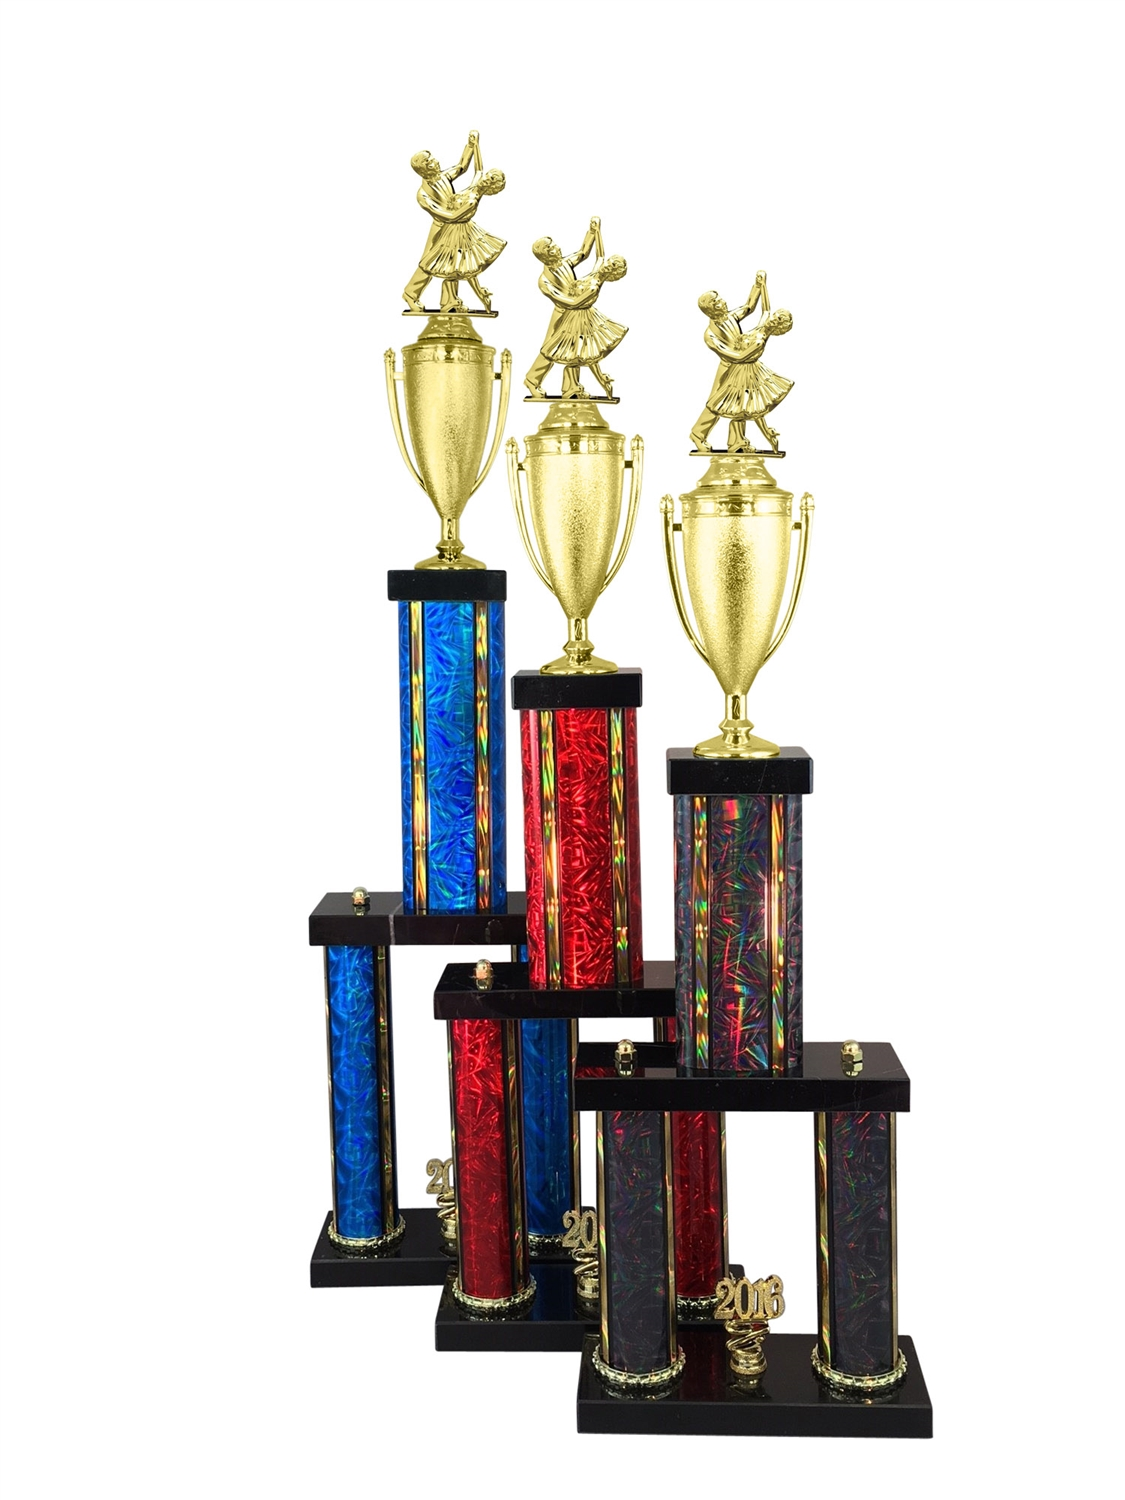 Dancing Couple Trophy Available in 11 Color & 6 Size Options